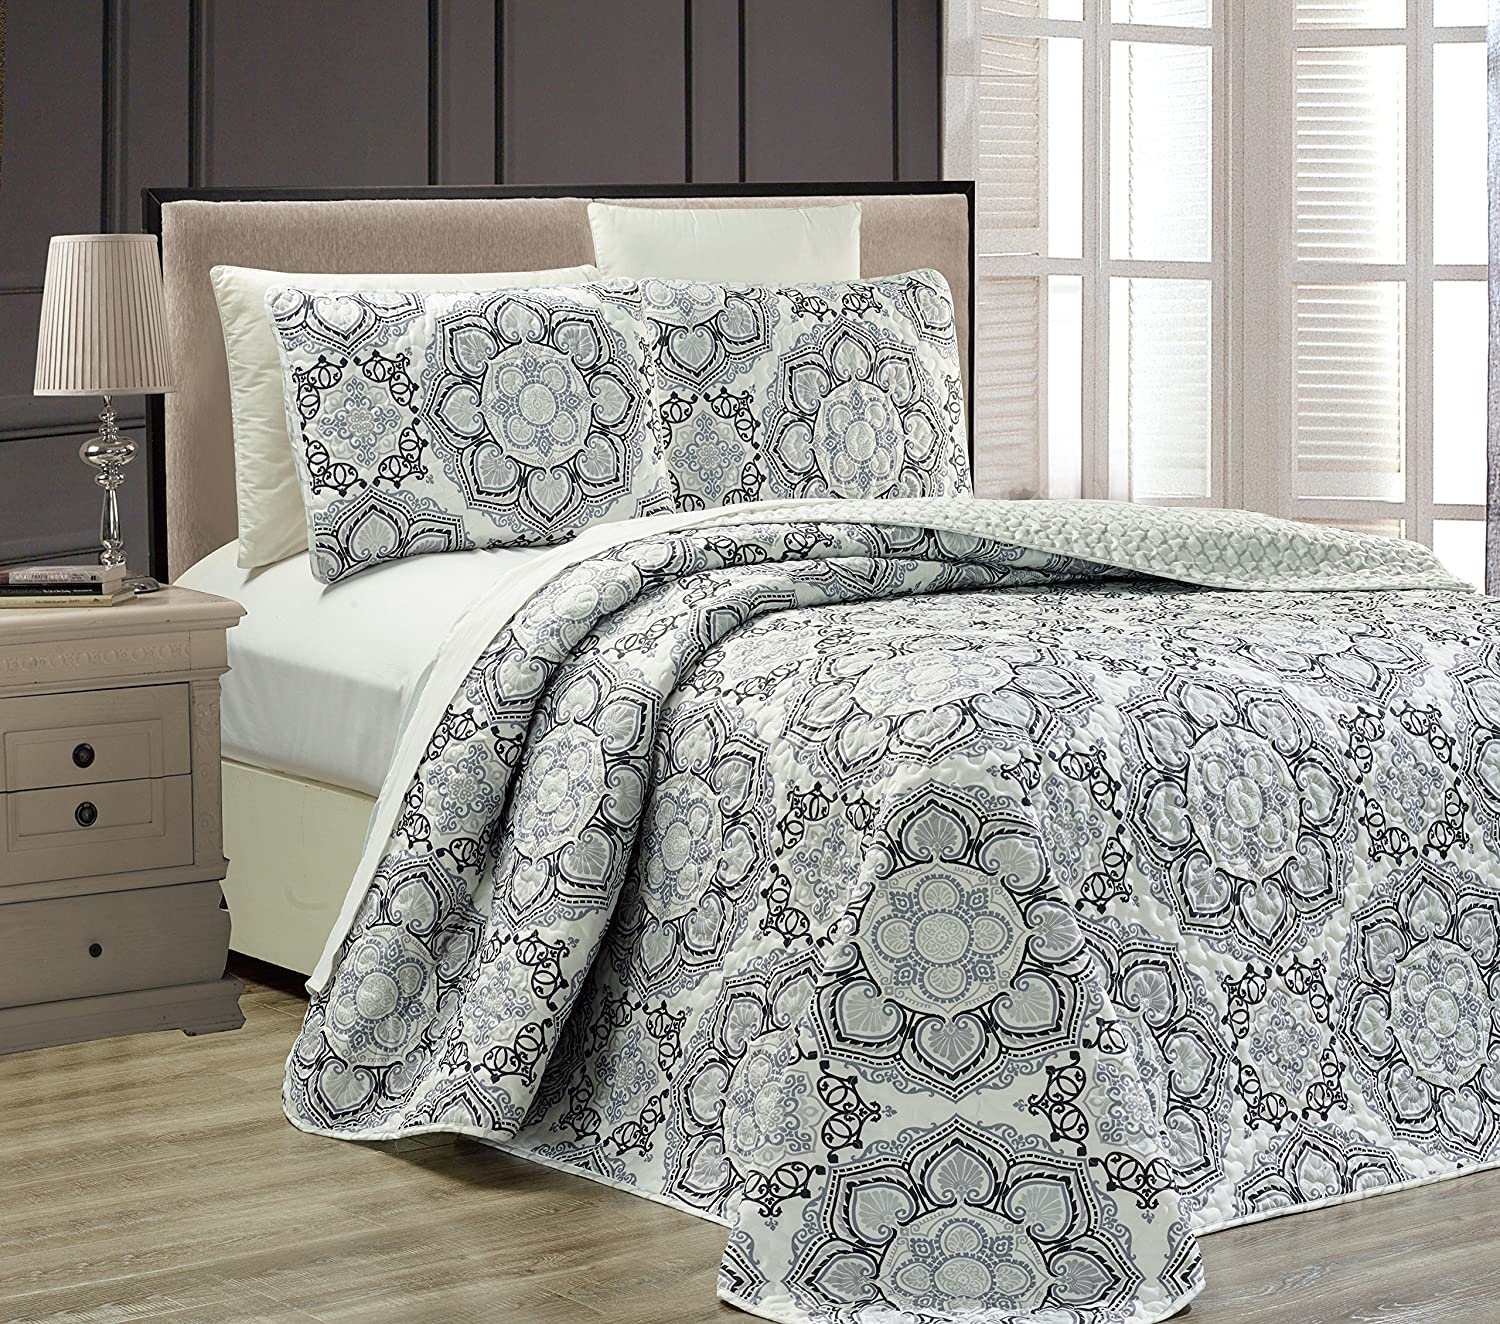 "Fancy Collection 3 pc Bedspread Bed Cover Modern Reversible White Grey Black New #Linda Grey King/California King Over Size 118"" x 95"""